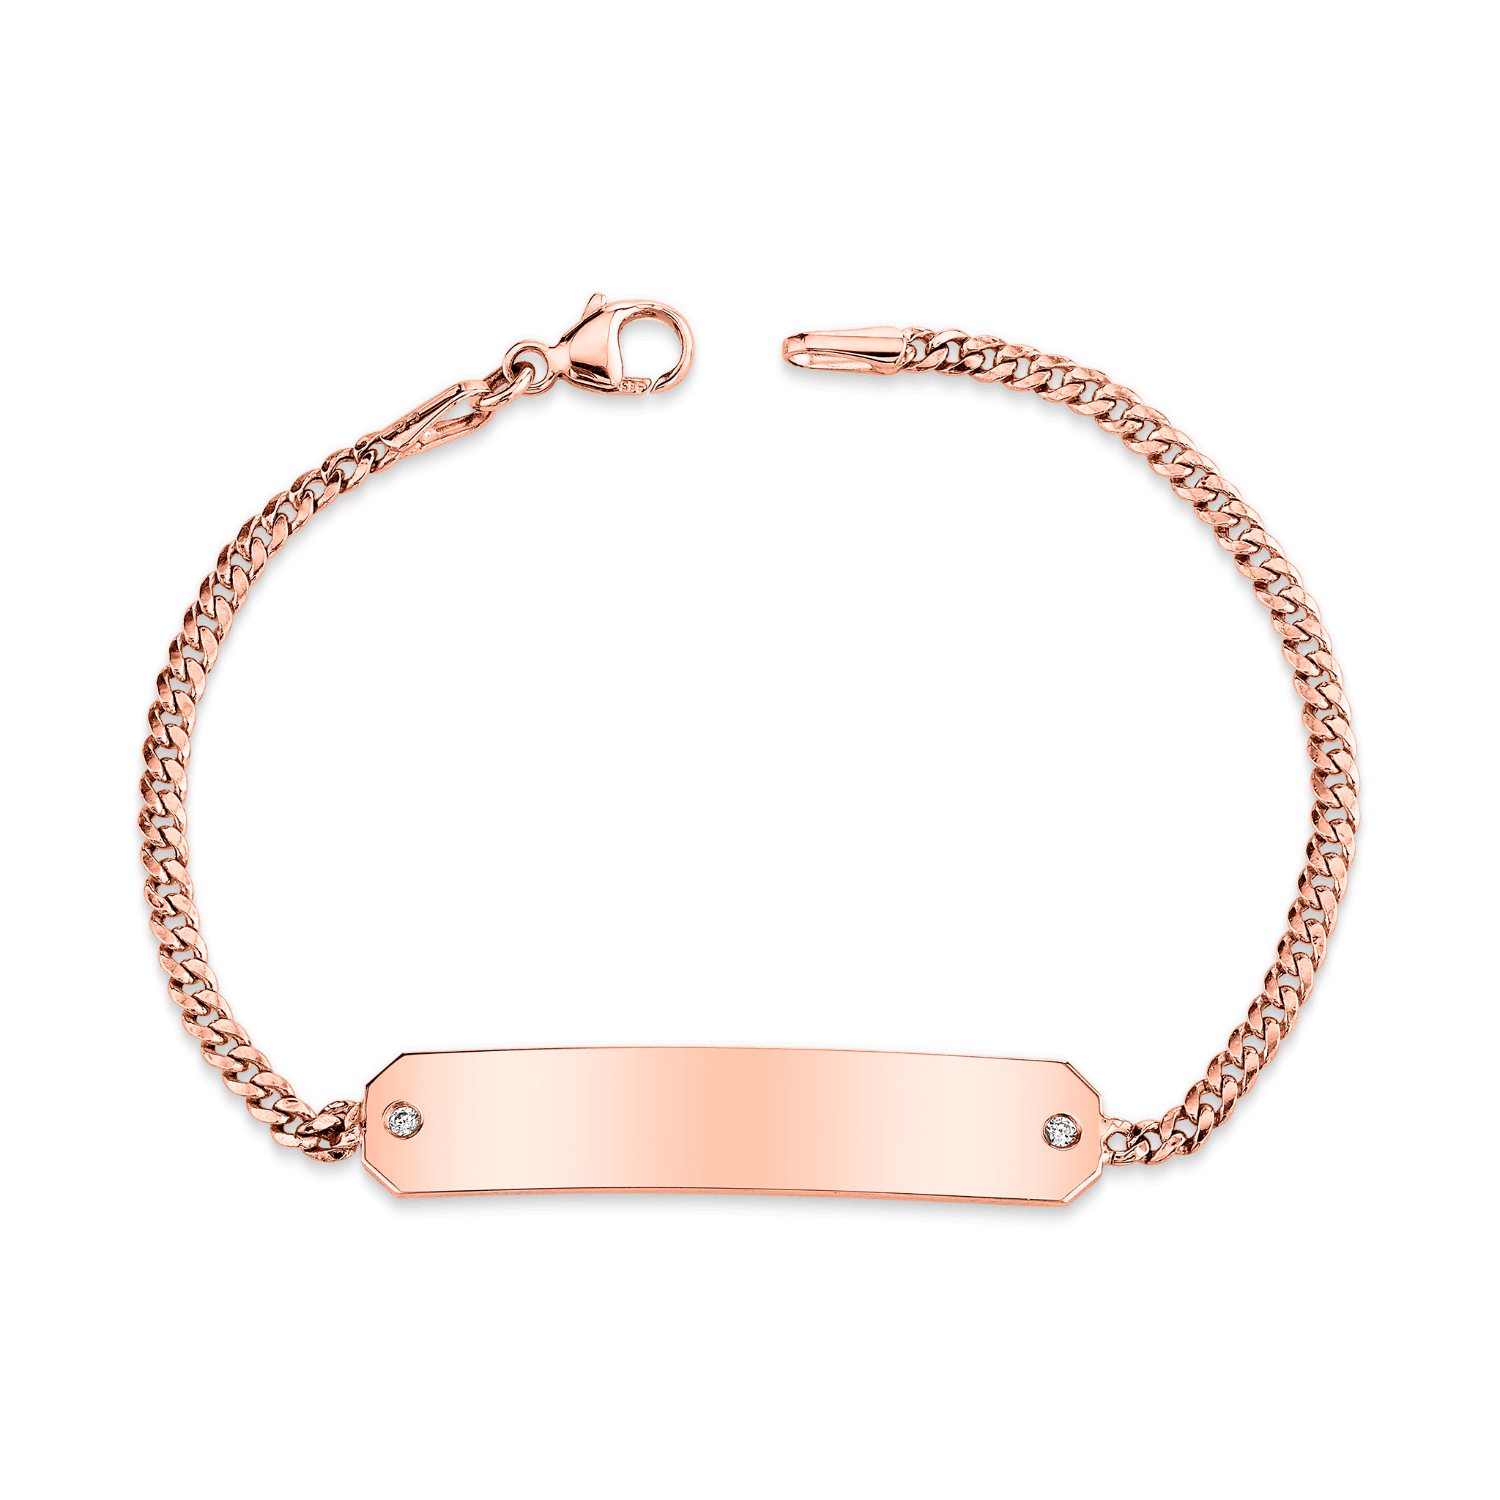 Diamond Engravable ID Bracelet